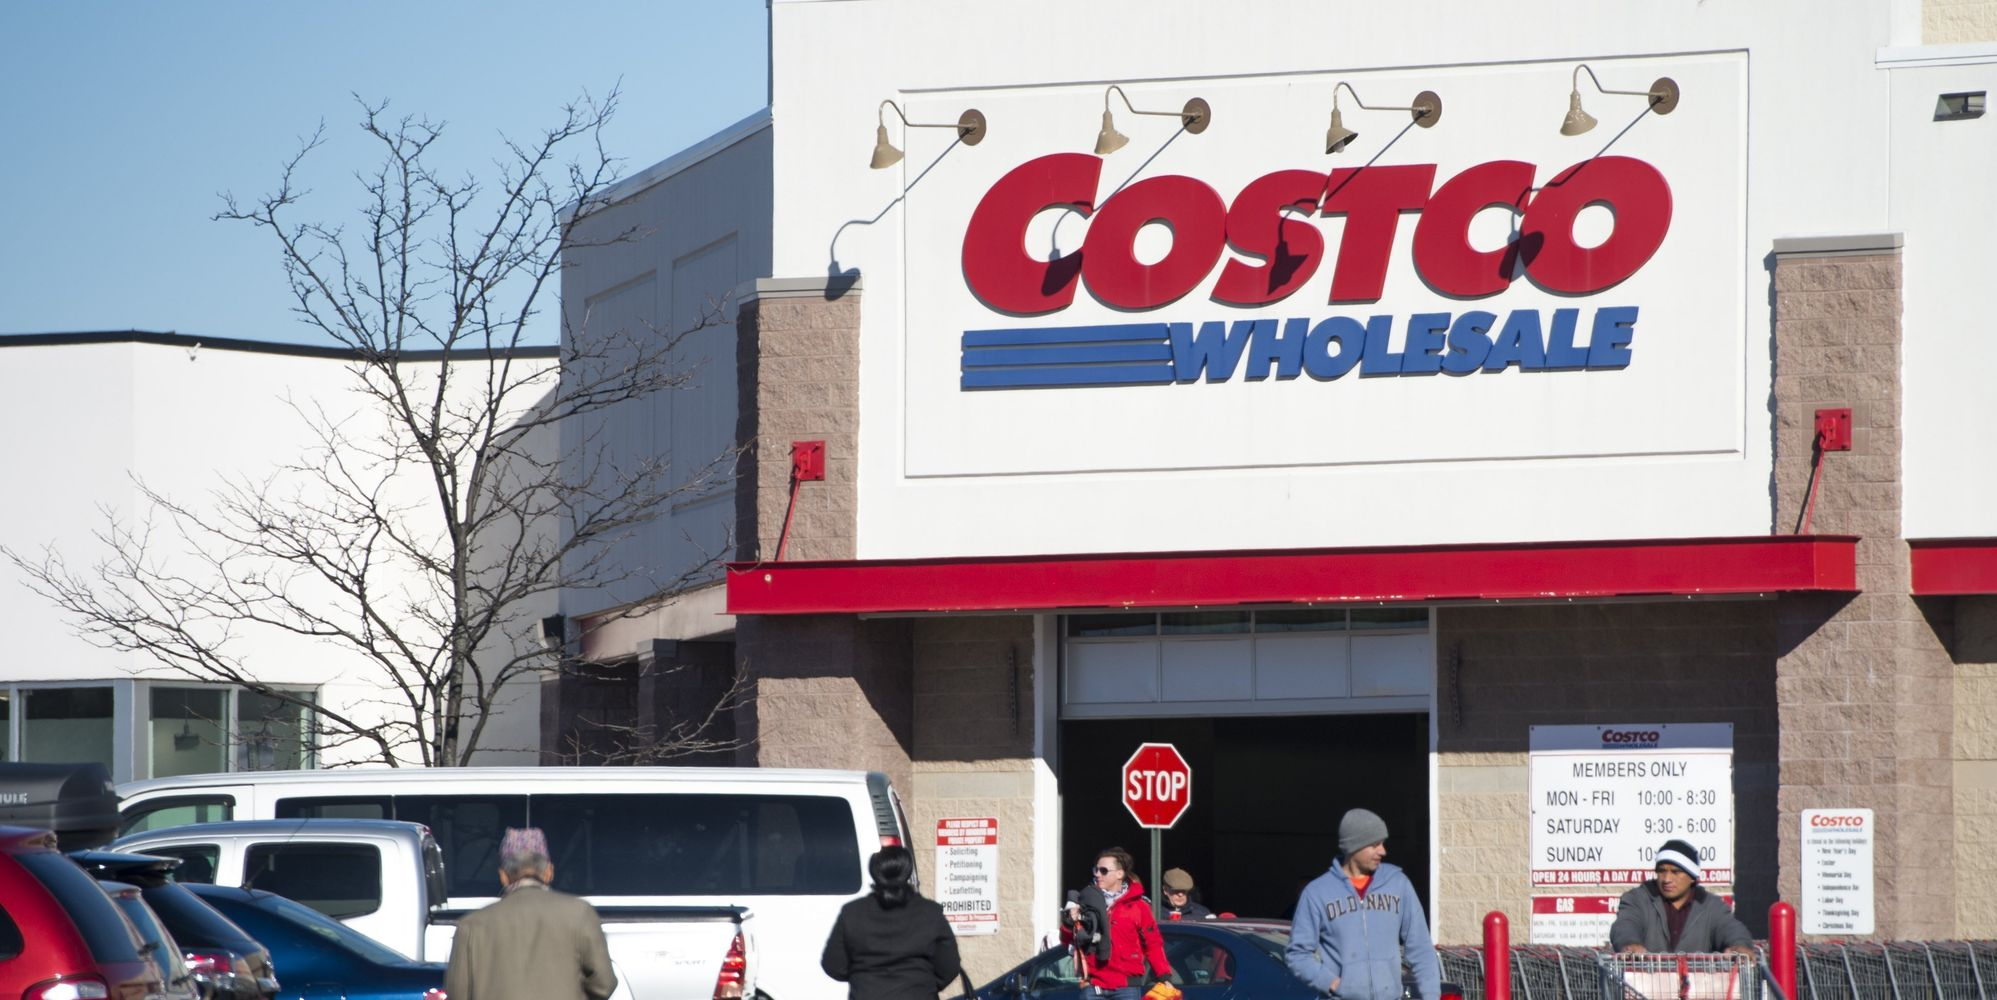 costco best practices Npsbenchmarkscom is the world's first completely free and accessible repository for net promoter scores, benchmarks, best practices, and thought leadership.